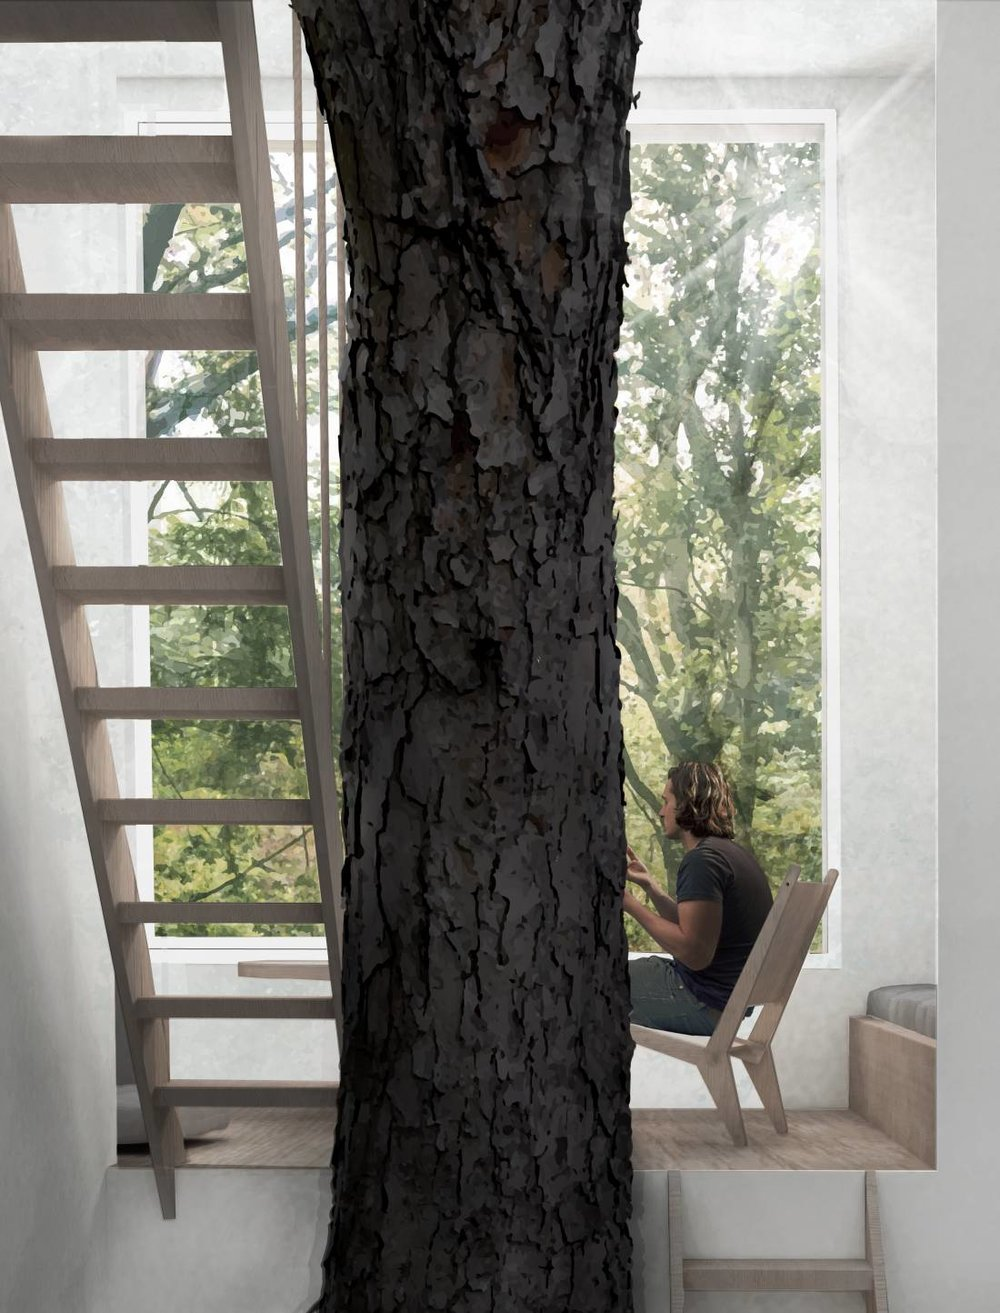 Treetop-Hotel_Denmark_lovtag_Architect-Sigurd-Larsen-axo-forest-INTERIOR-VIEW-with-tree-550x722@2x.jpg